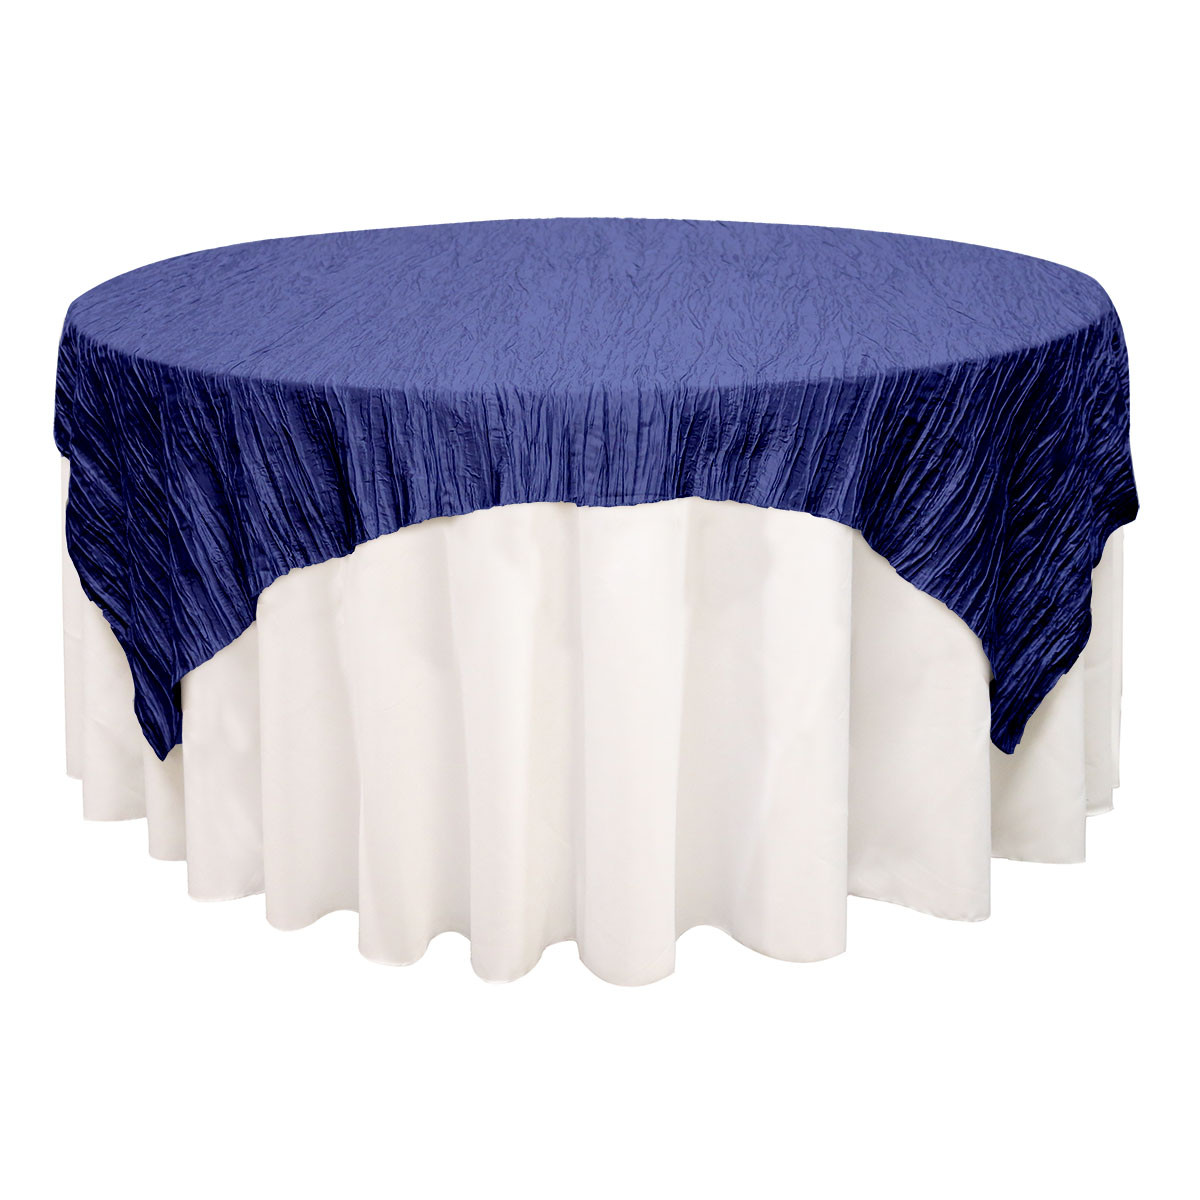 72 Inch Square Crinkle Taffeta Table Overlays Navy Blue